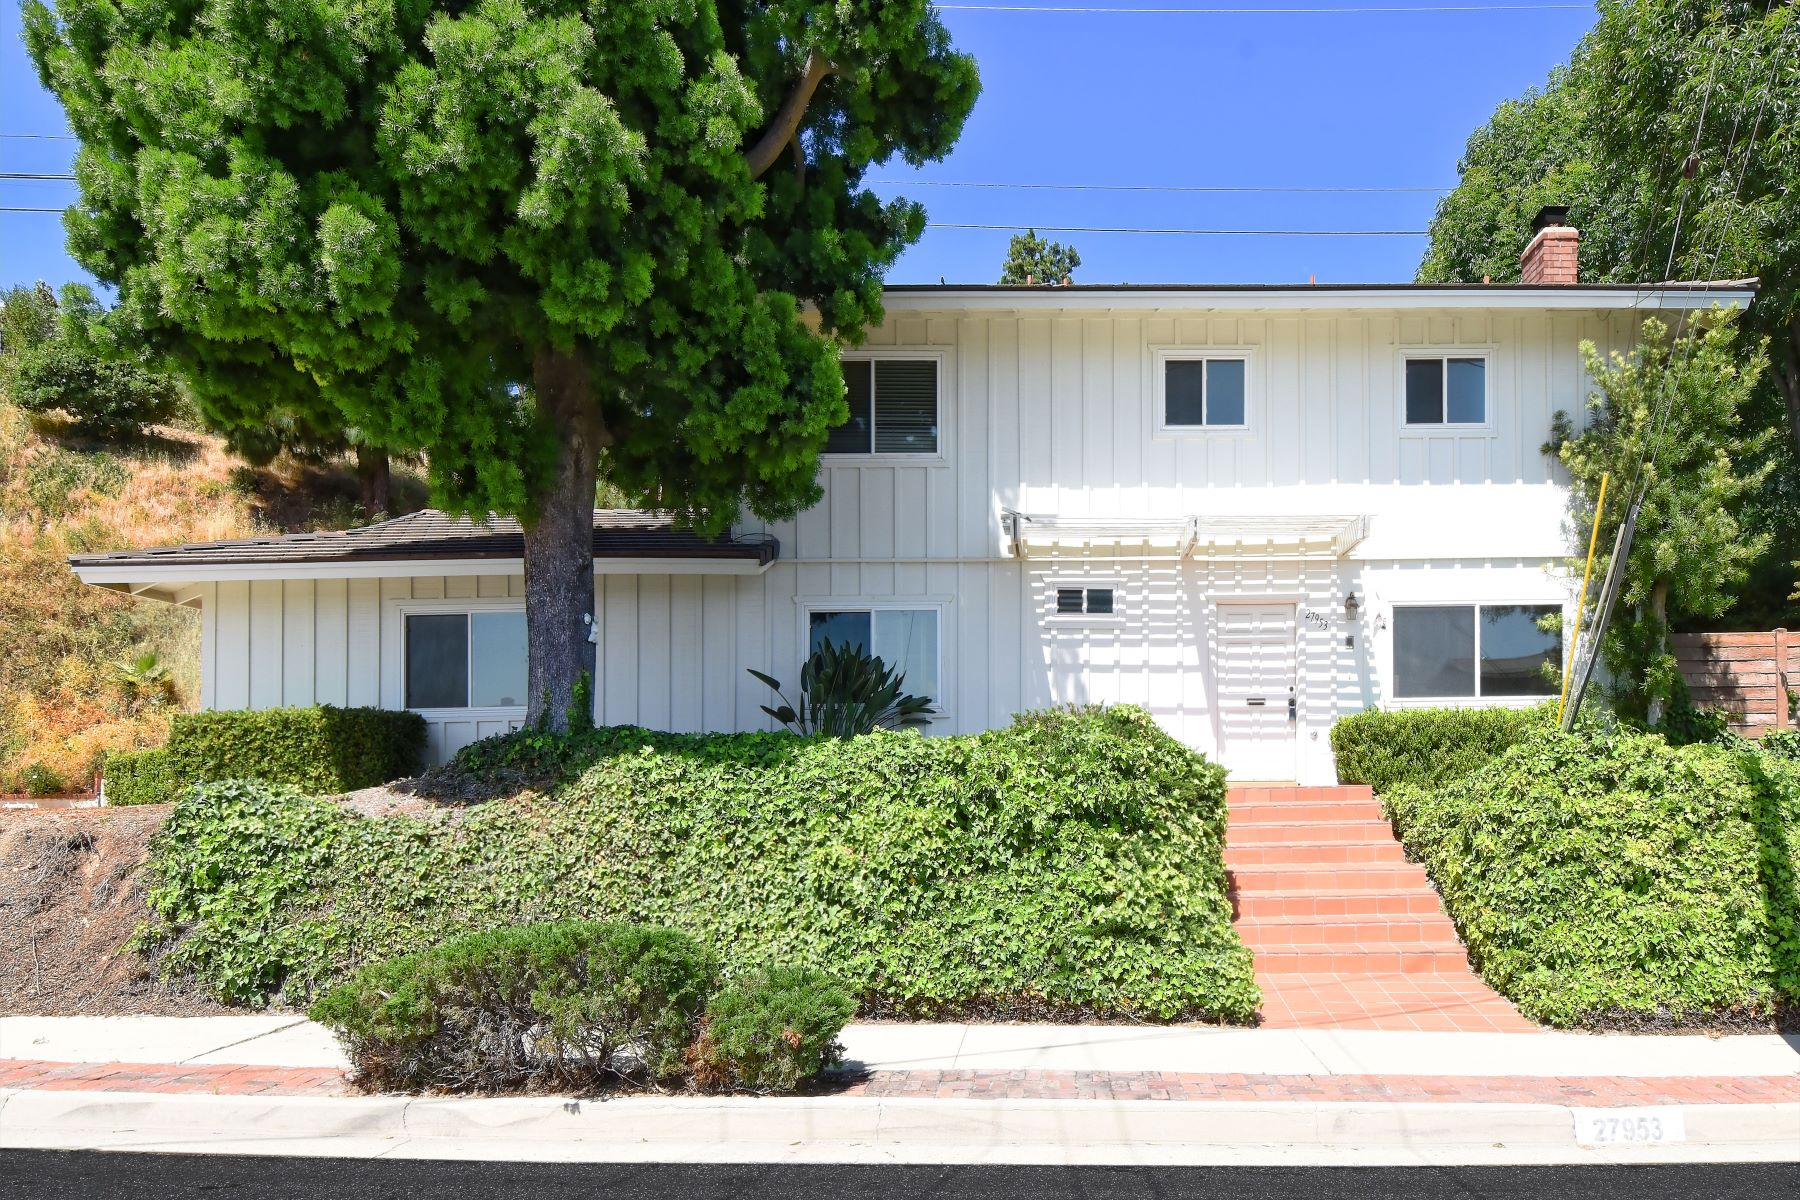 Single Family Homes for Active at 27953 Alaflora Drive, Rancho Palos Verdes, CA 90275 27953 Alaflora Drive Rancho Palos Verdes, California 90275 United States